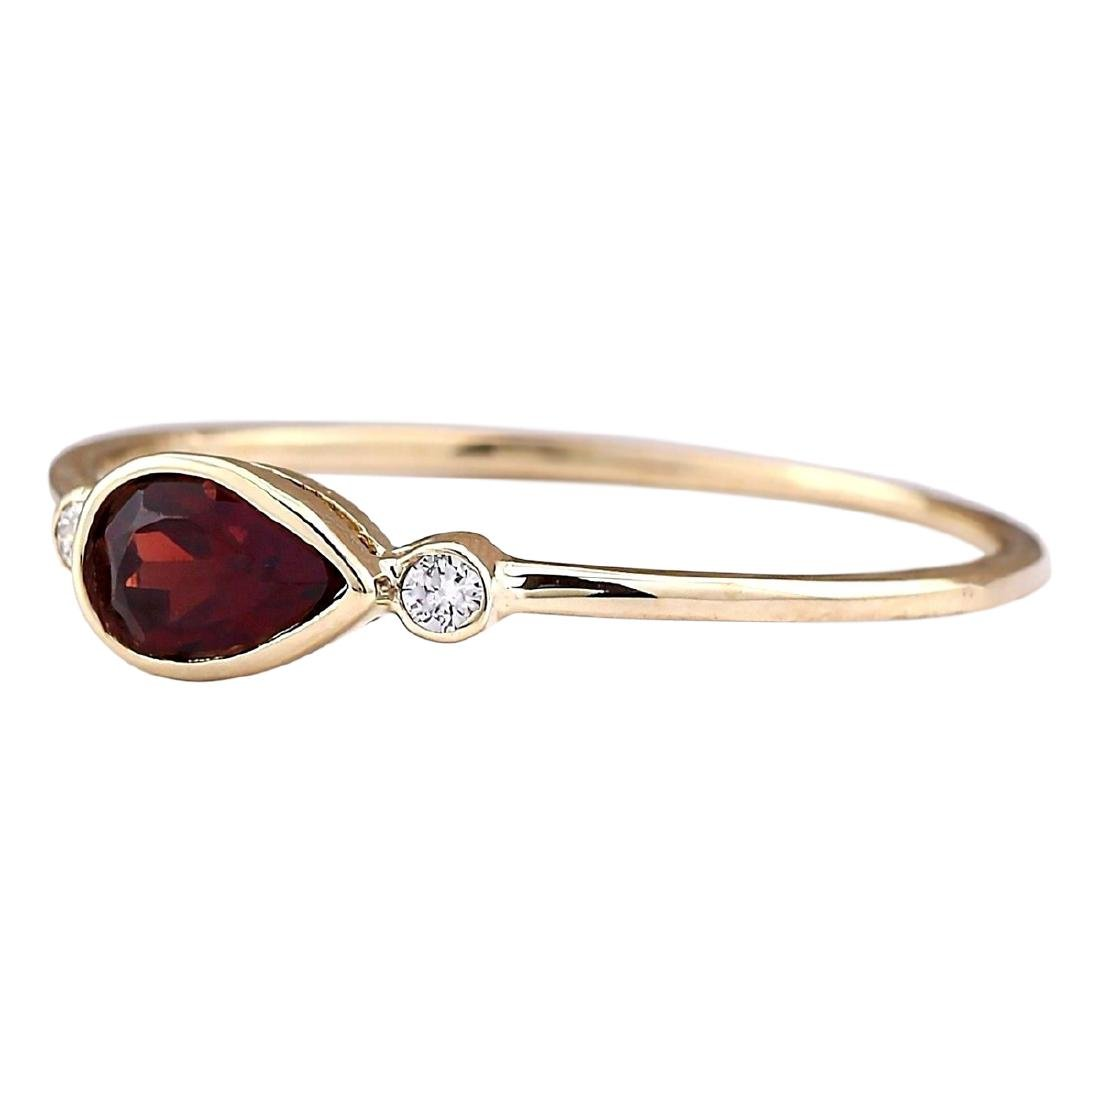 0.56 CTW Natural Rhodolite Garnet Ring In 18K Yellow - 2